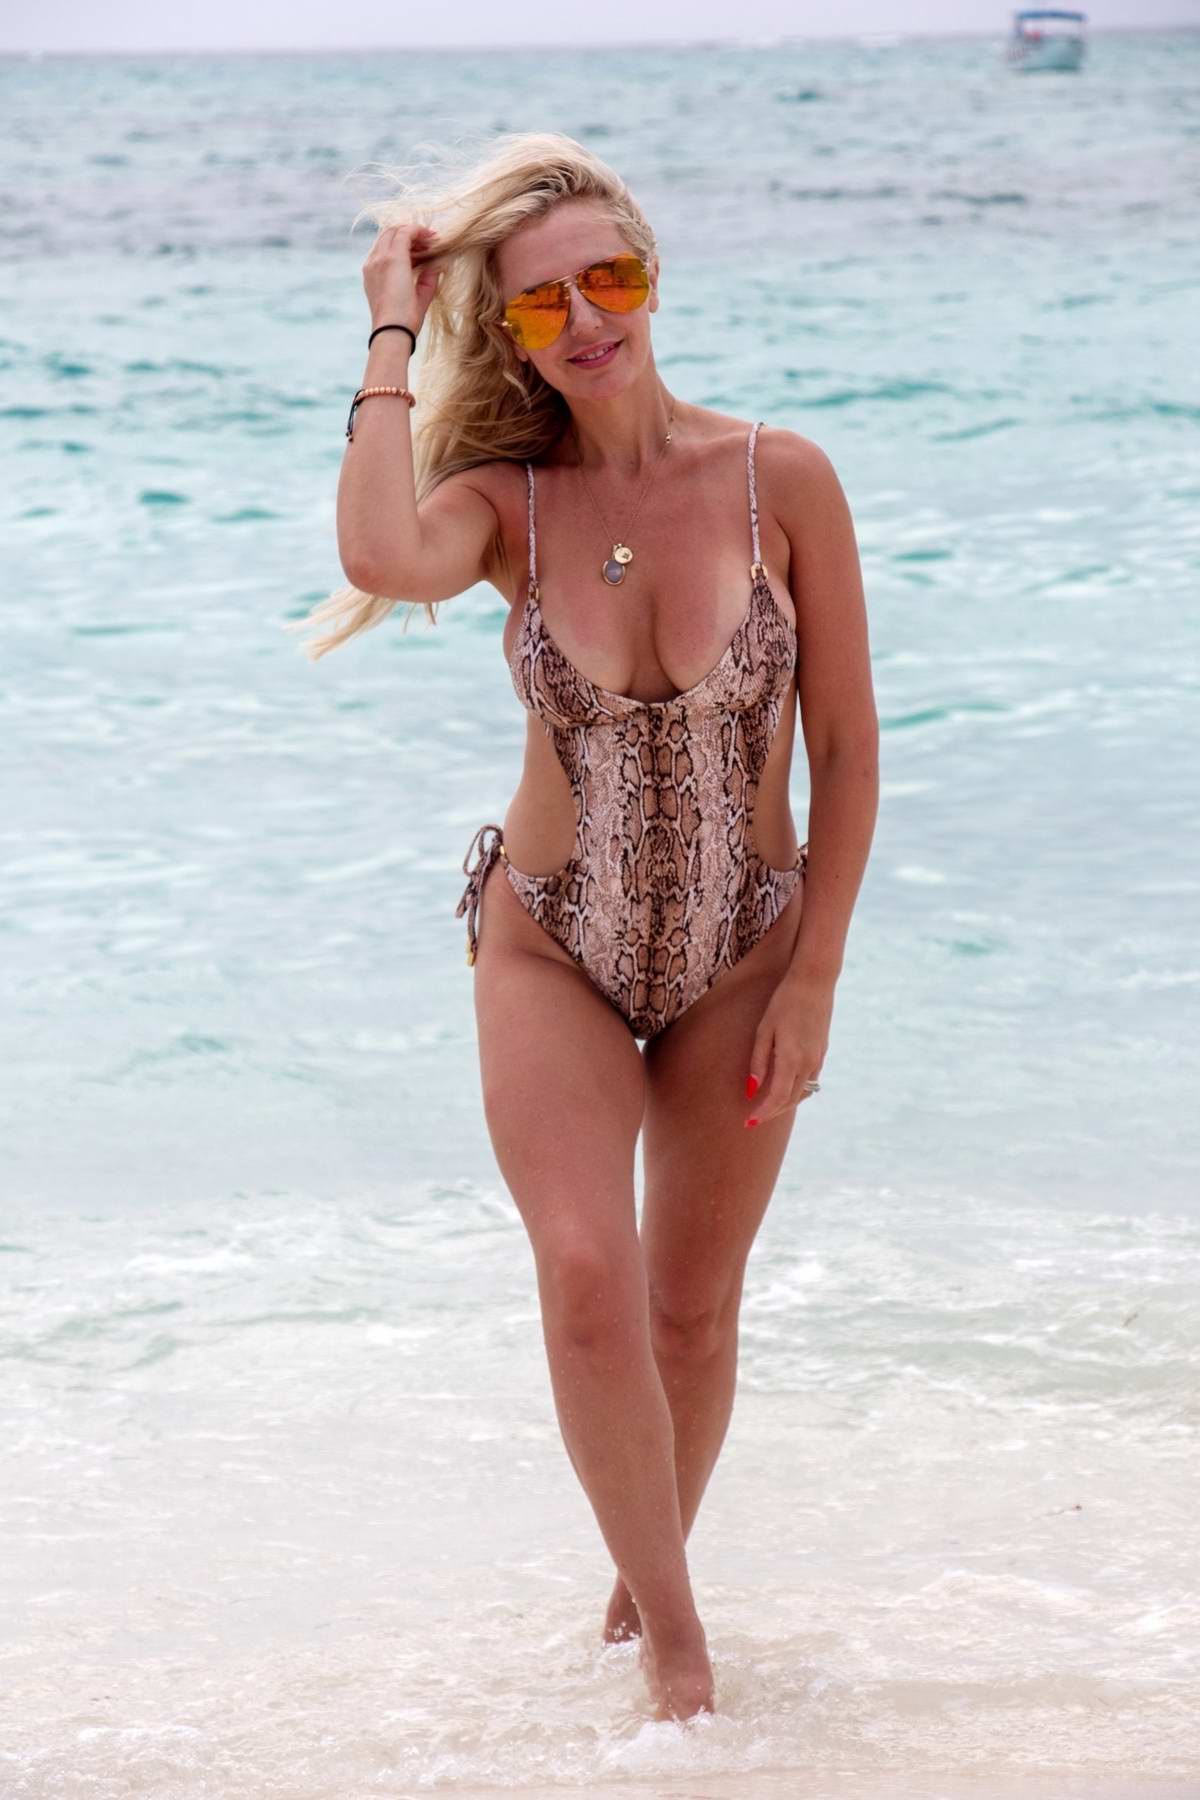 Naomi Isted enjoys the beaches in a swimsuit in Turks and Caicos